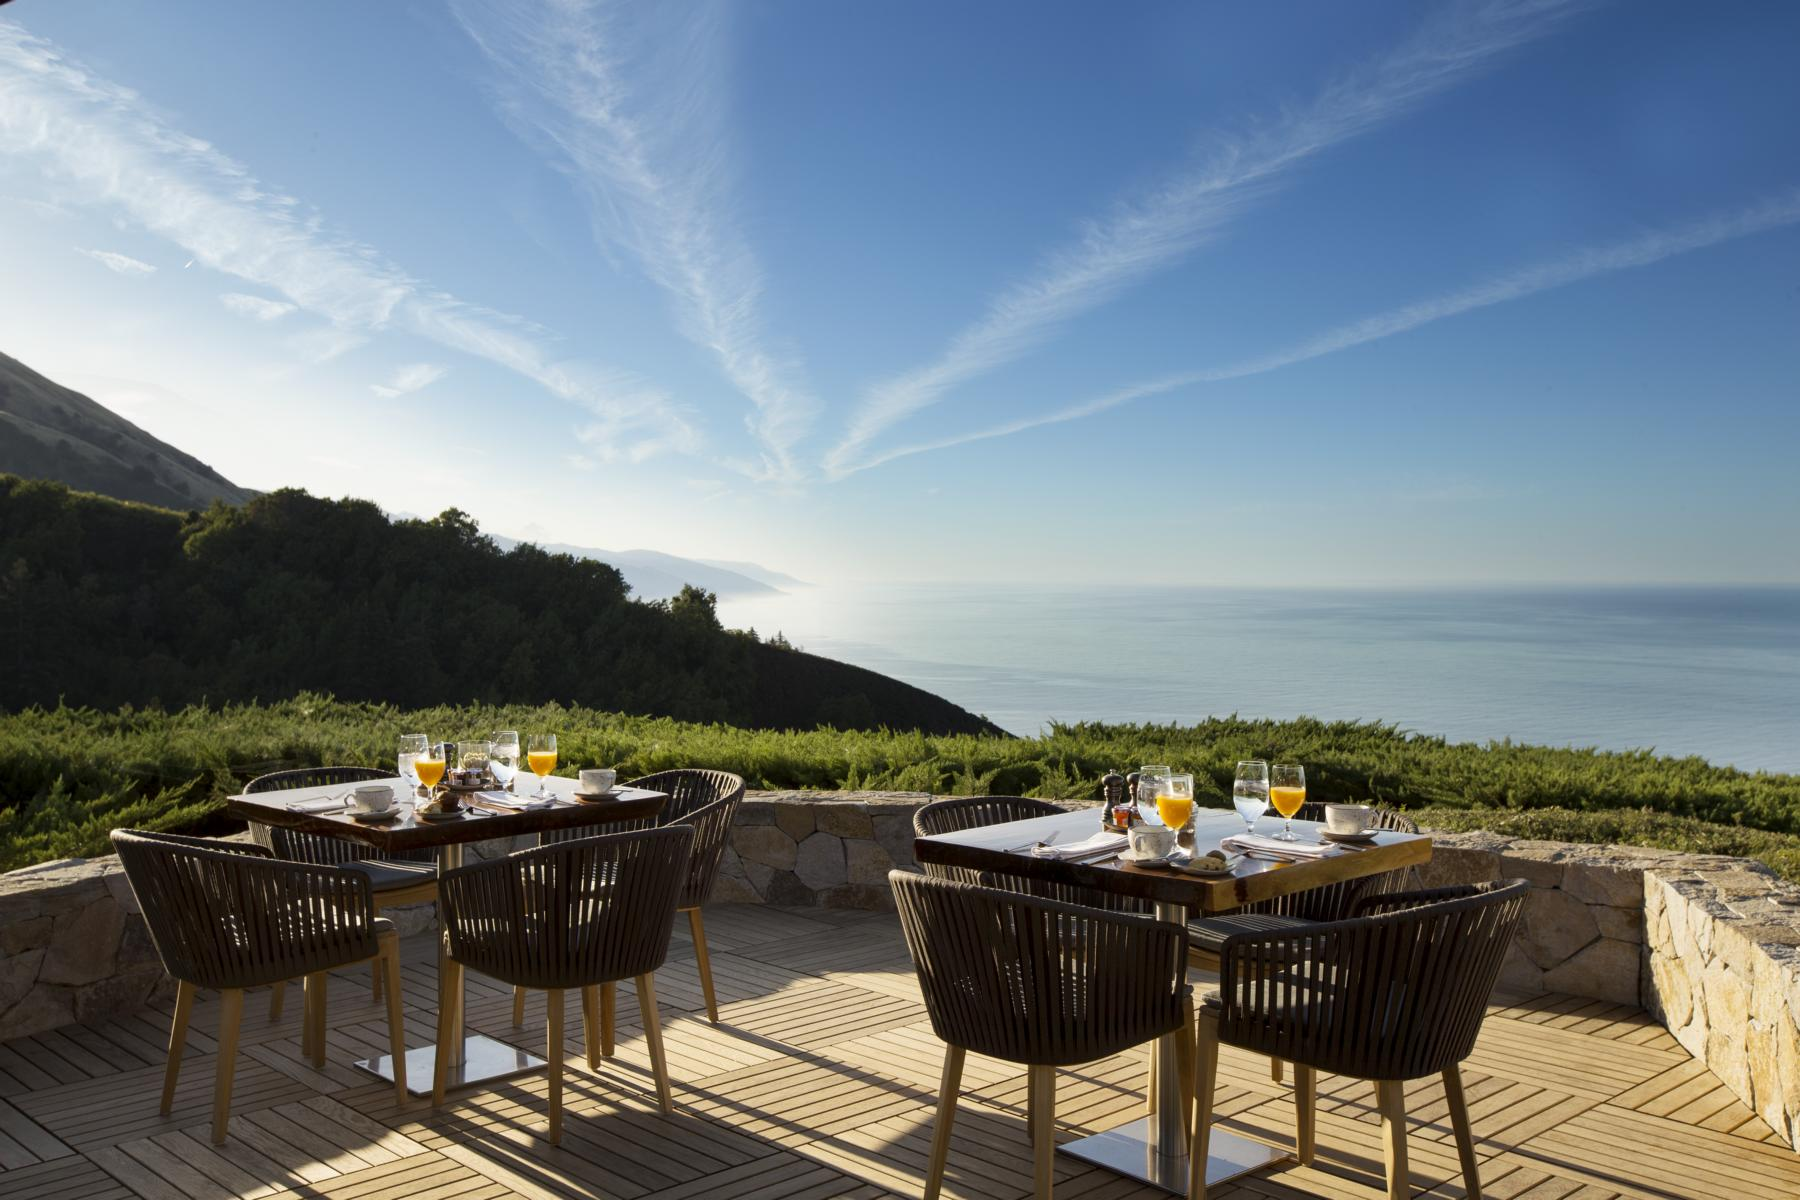 Ventana - K1600_Ventana-Big-Sur-An-Alila-Resort-Dining-Sur-House-Deck-01.jpg